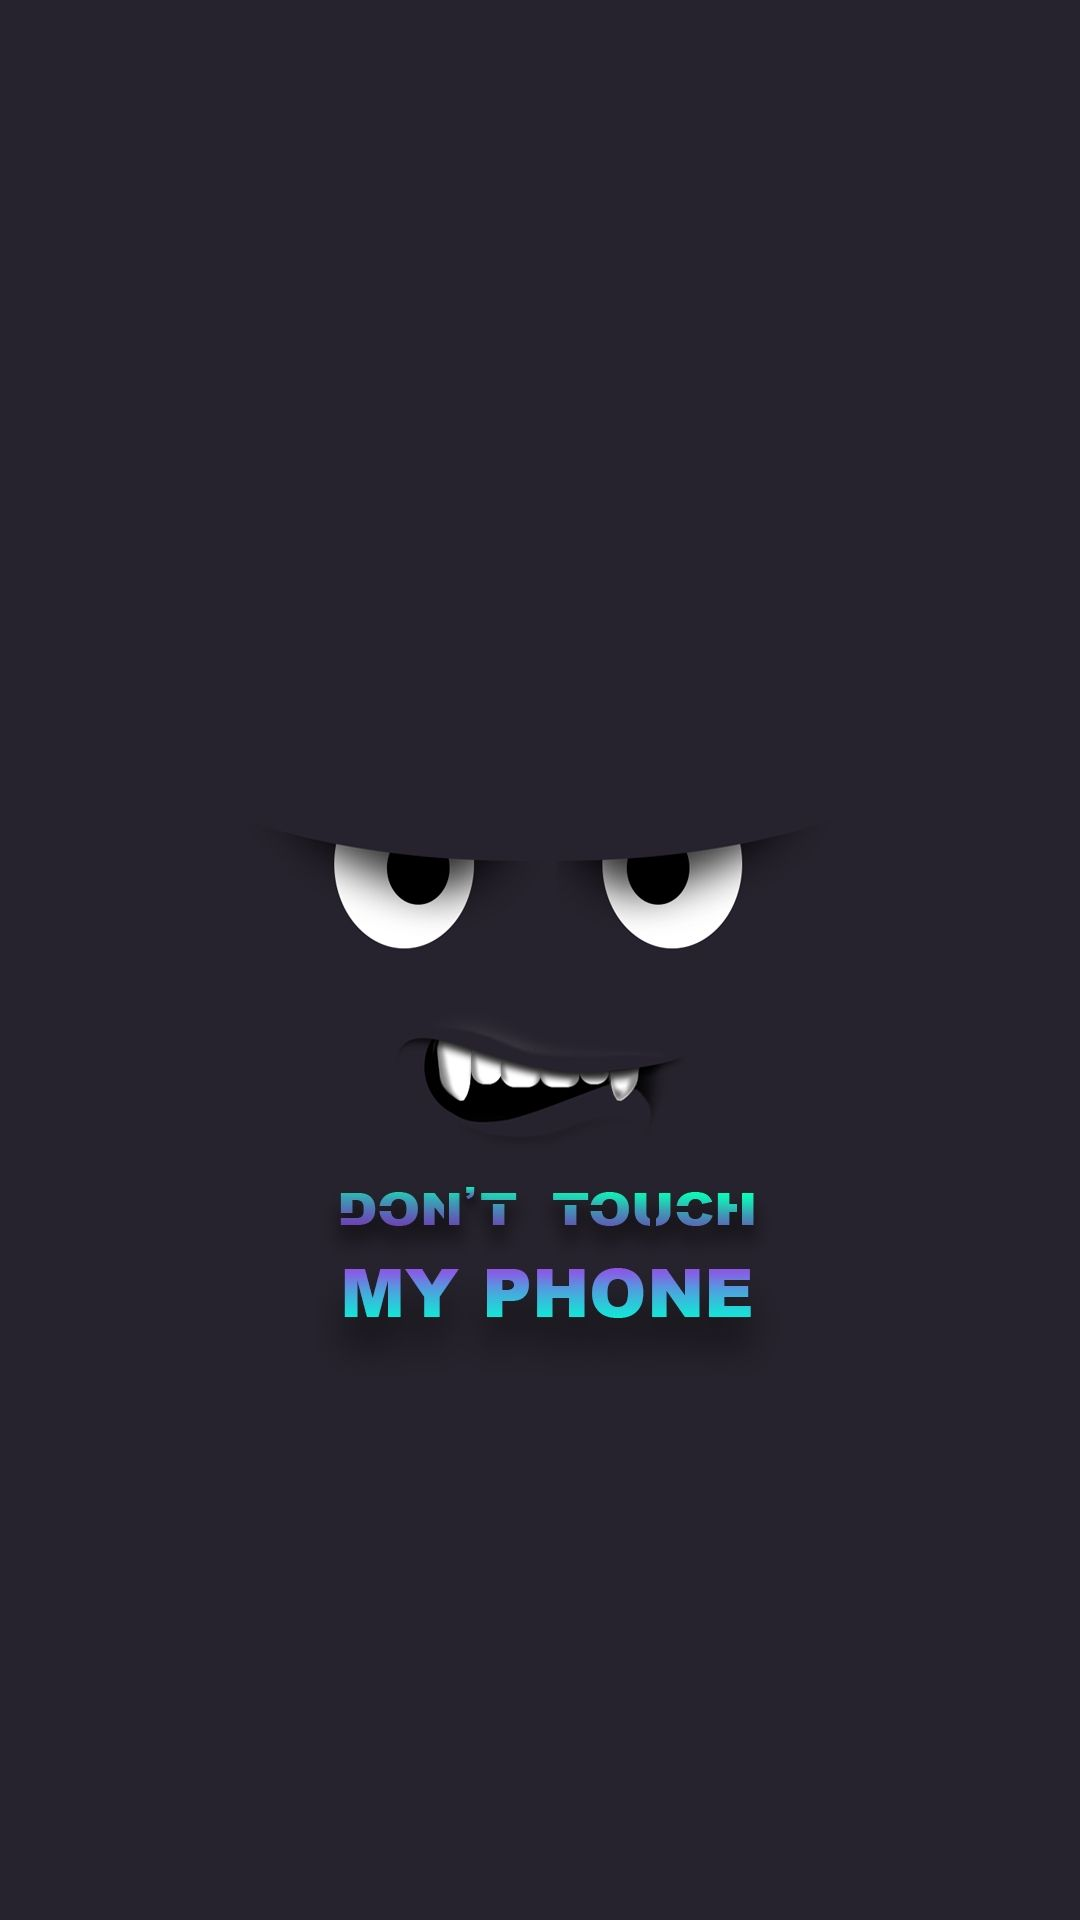 1080x1920 Awesome Funny Animated Wallpapers for Phones   HD Wallpaper